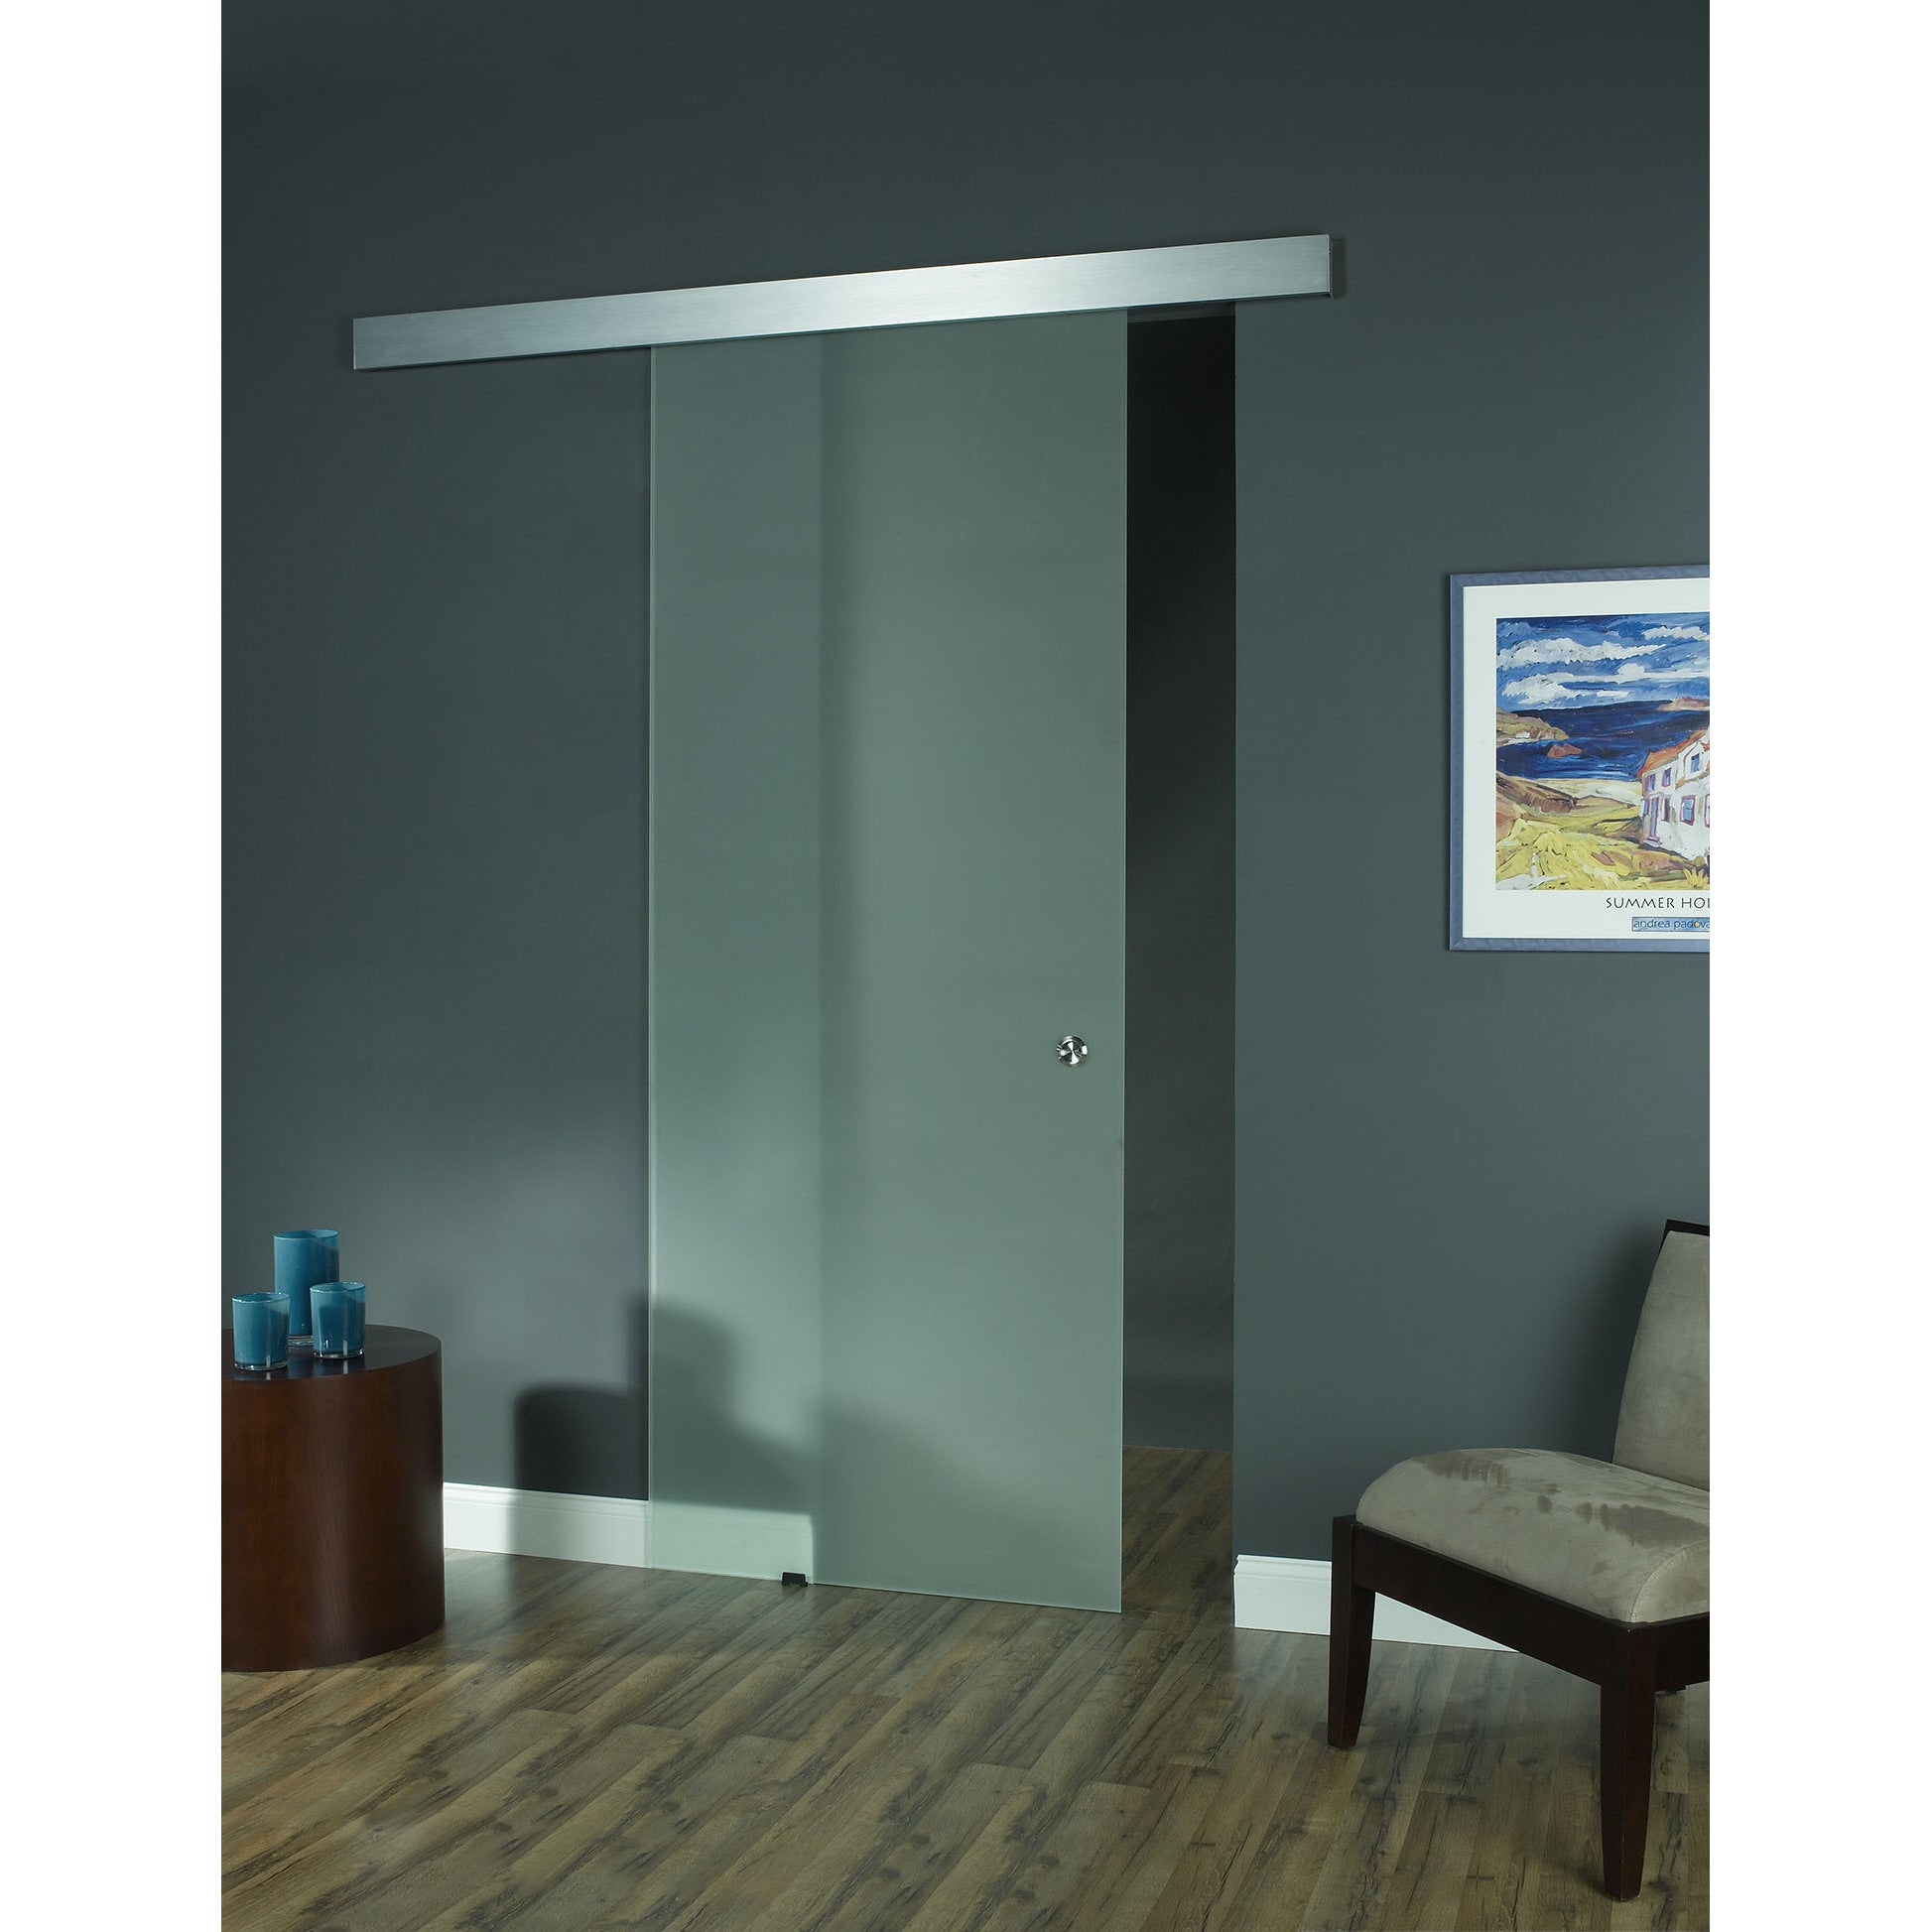 Opaque Glass Barn Door (36x96) - Free Shipping Today - Overstock - 17527379  sc 1 st  Overstock & Opaque Glass Barn Door (36x96) - Free Shipping Today - Overstock ...